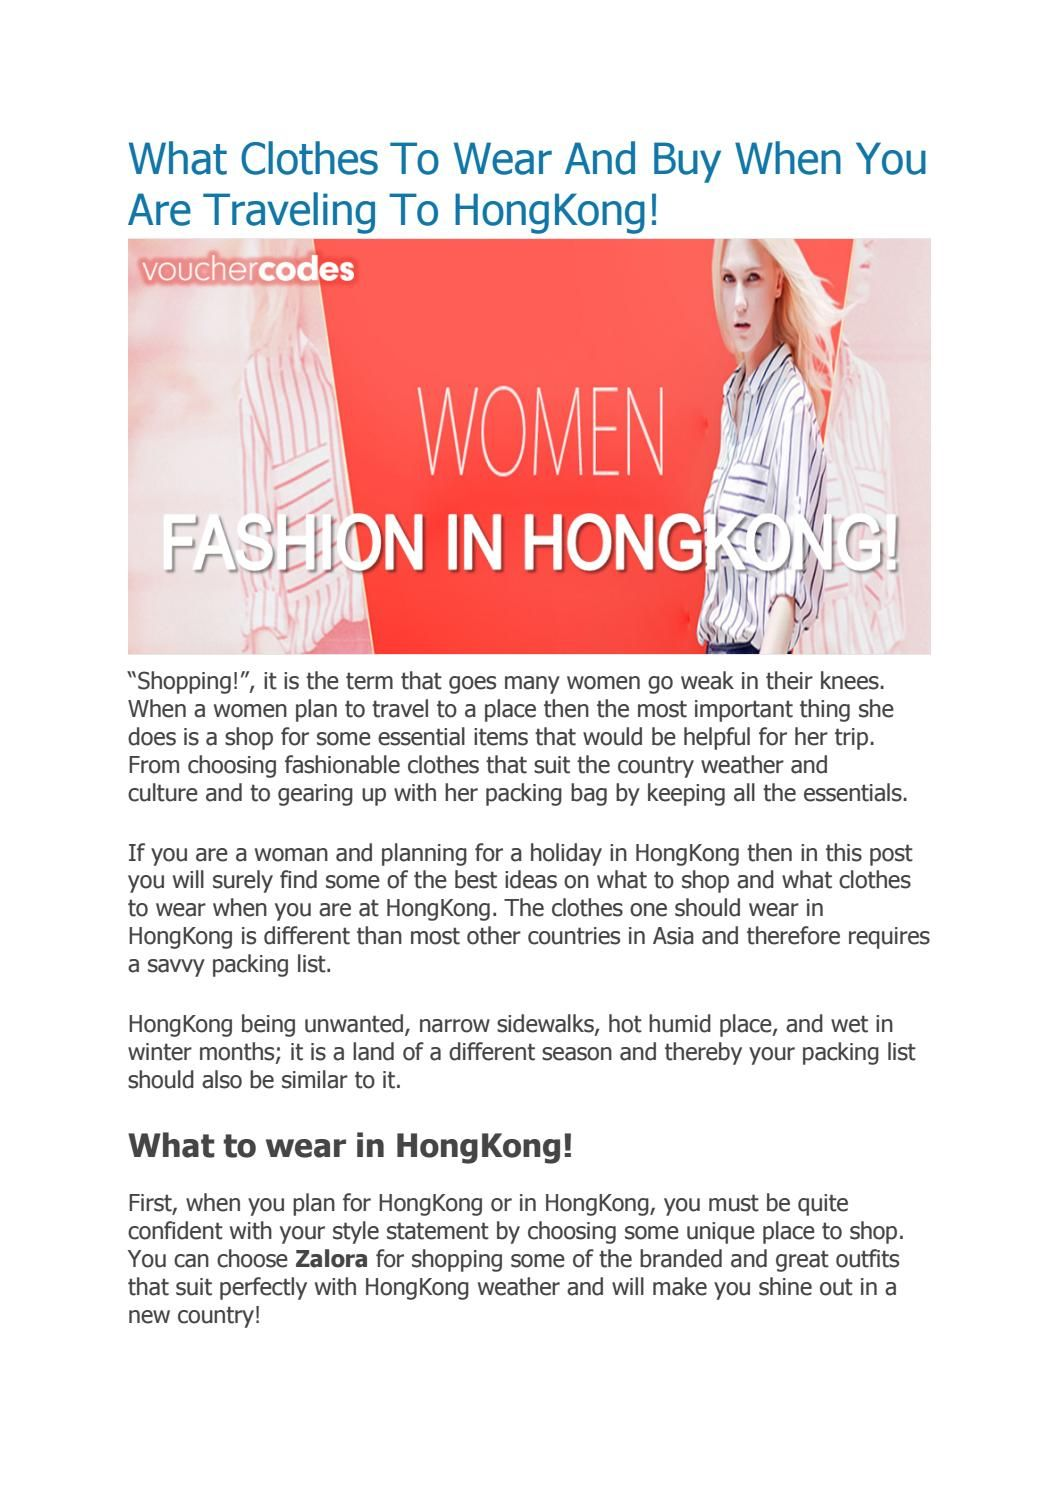 b4967b64d6934 What clothes to wear and buy when you are traveling to hongkong ...